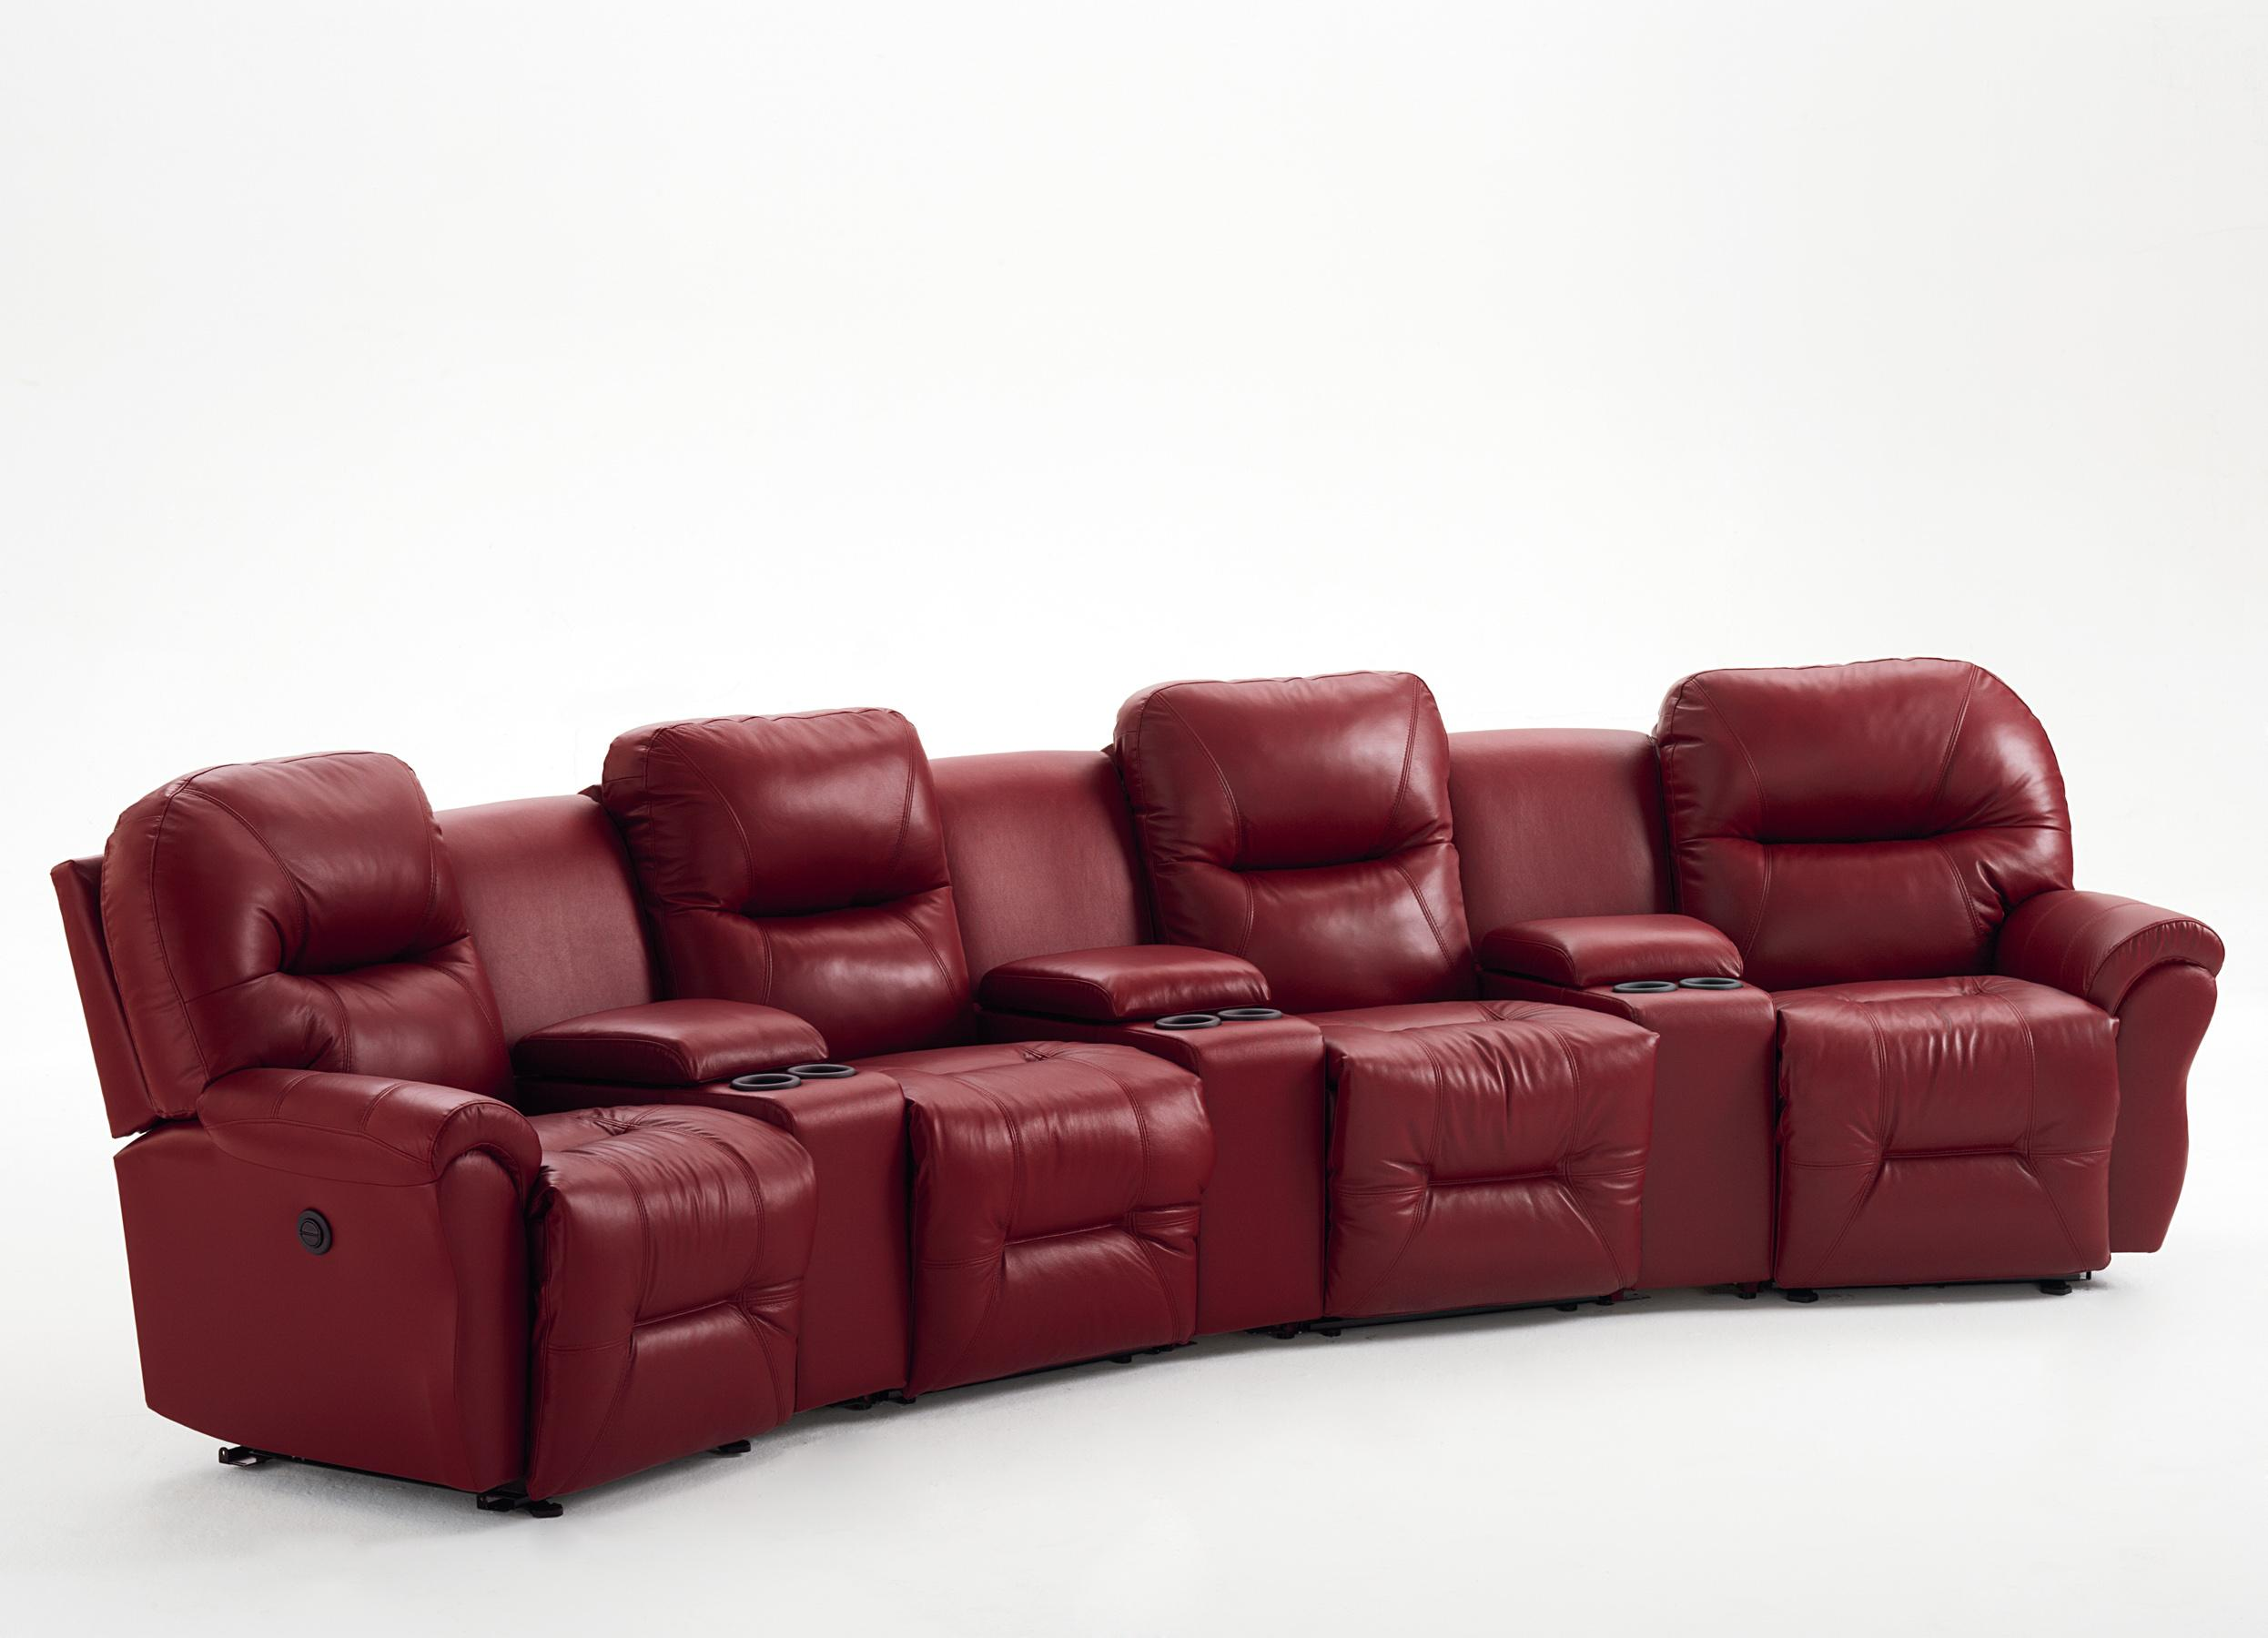 Bodie 4-Seater Power Reclining Home Theater Group by Best Home Furnishings at Baer's Furniture